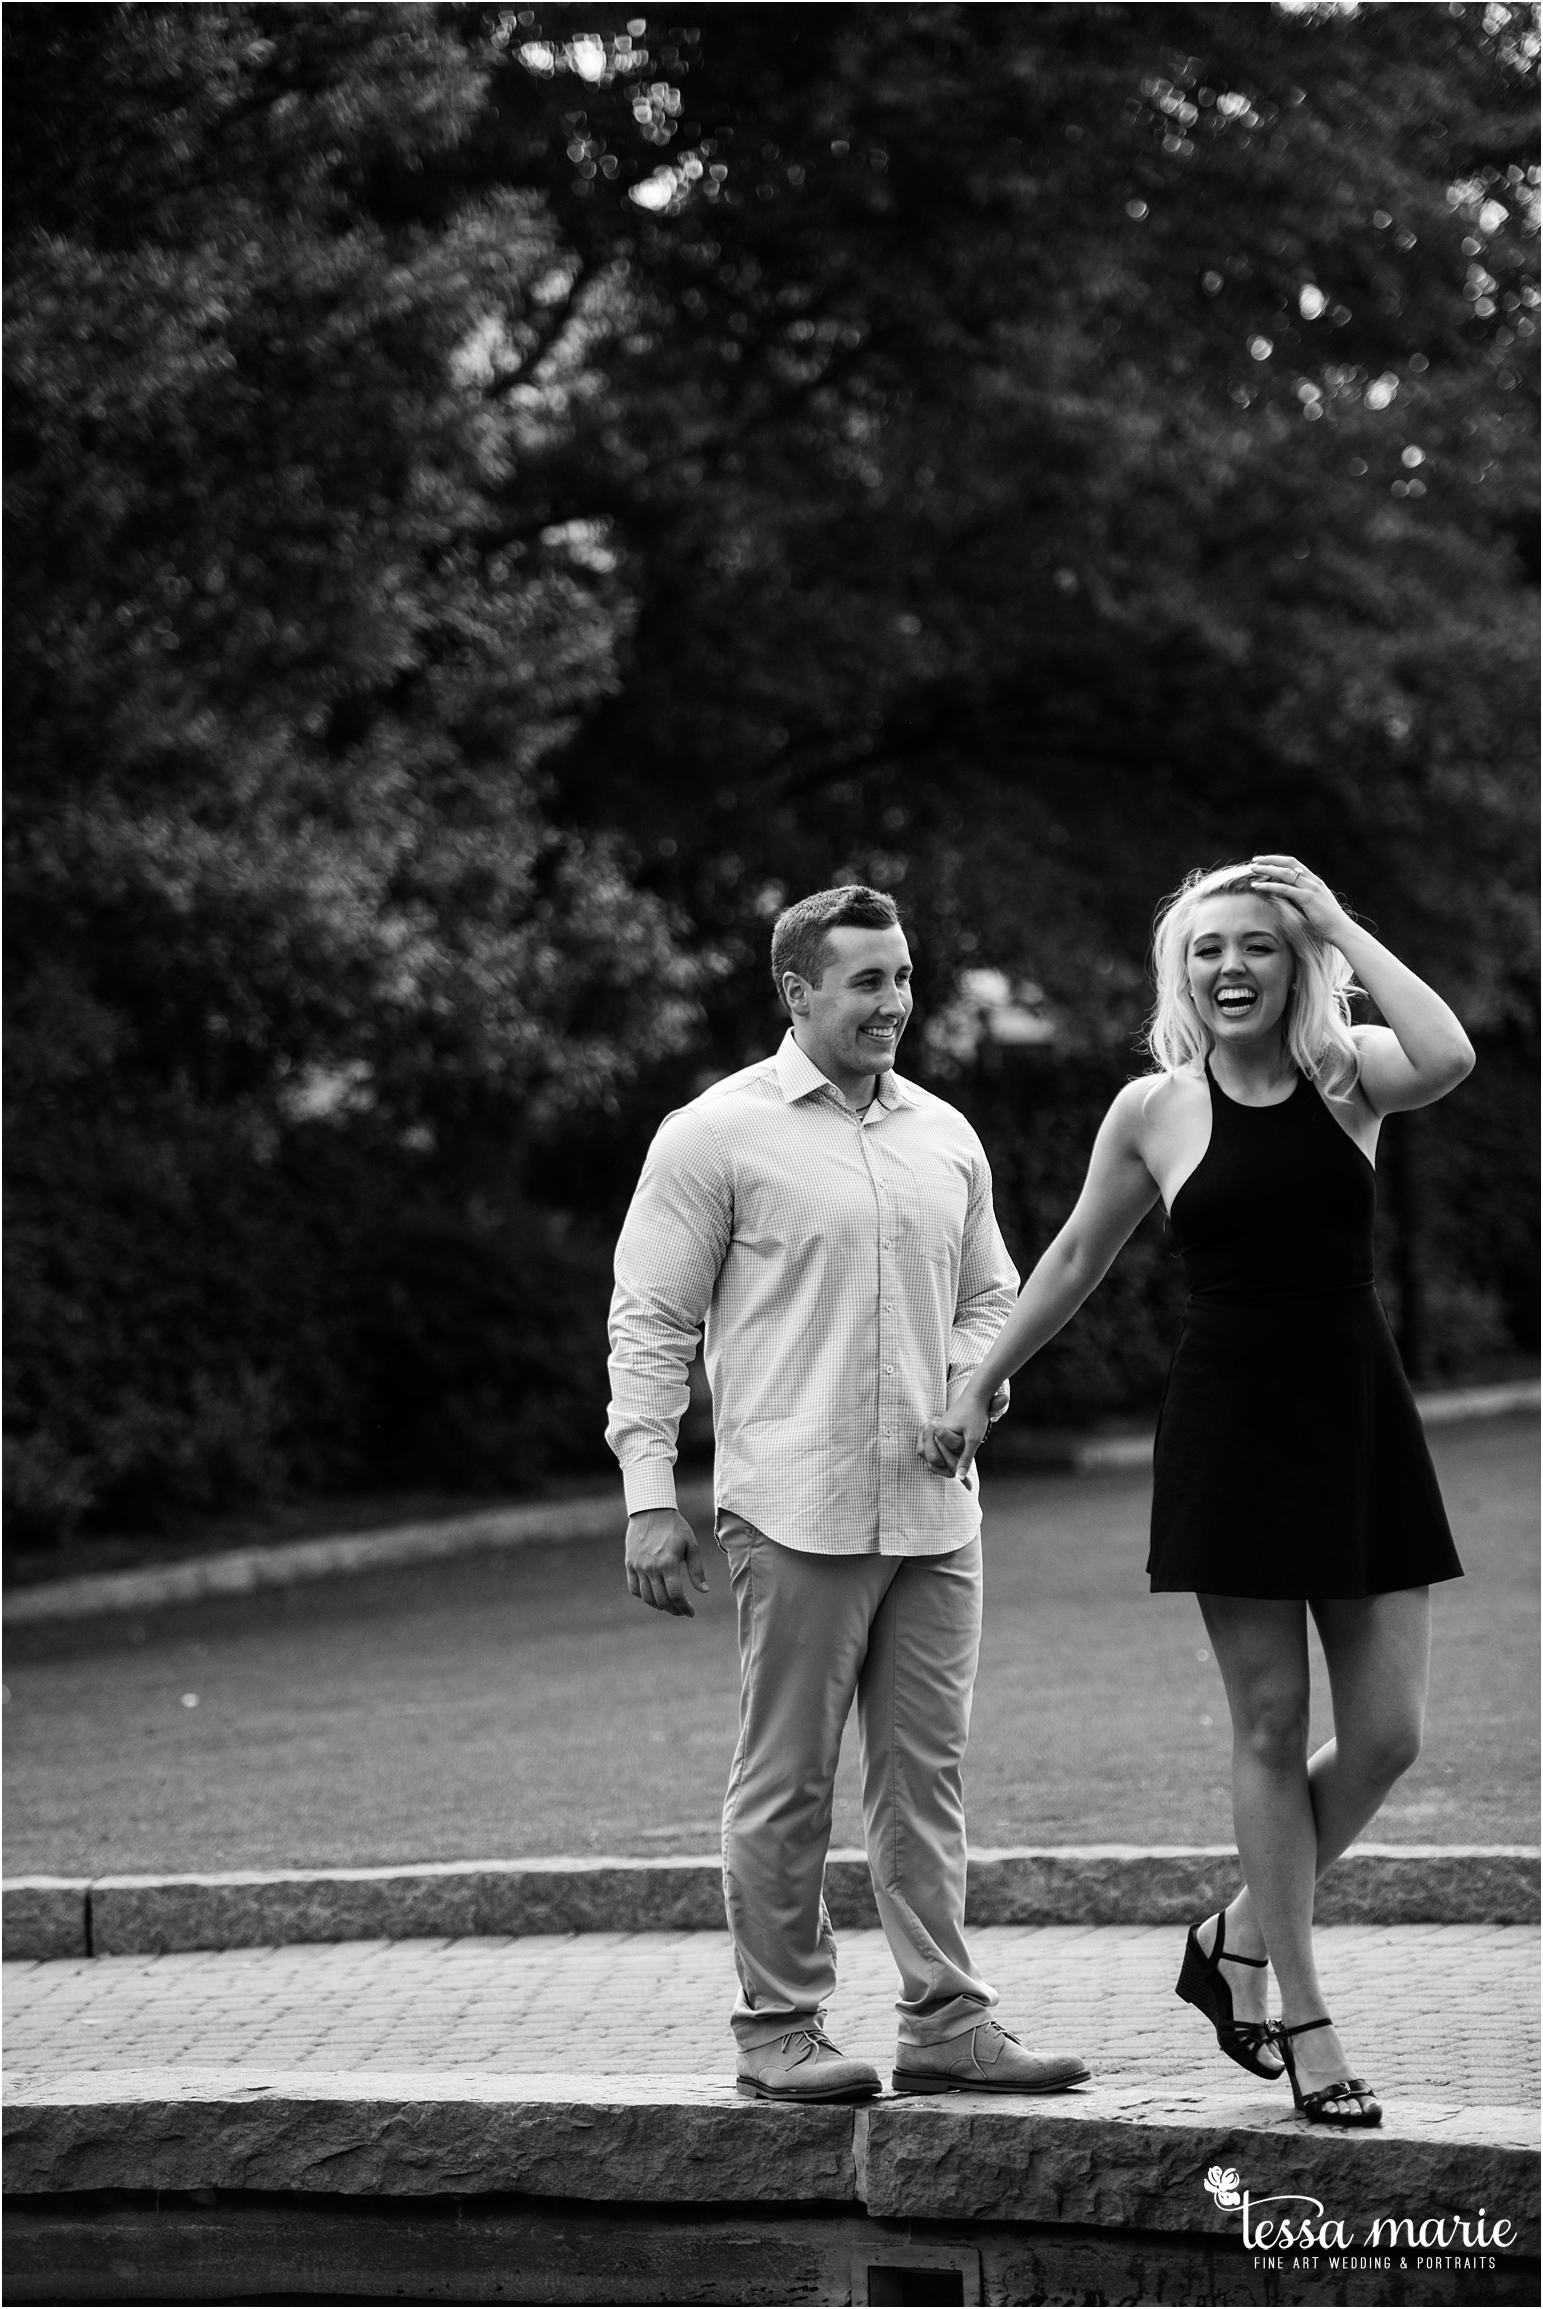 athens_ga_uga_university_of_georgia_engagement_pictures_north_campus_tessa_marie_weddings_athens_wedding_photographer_0055